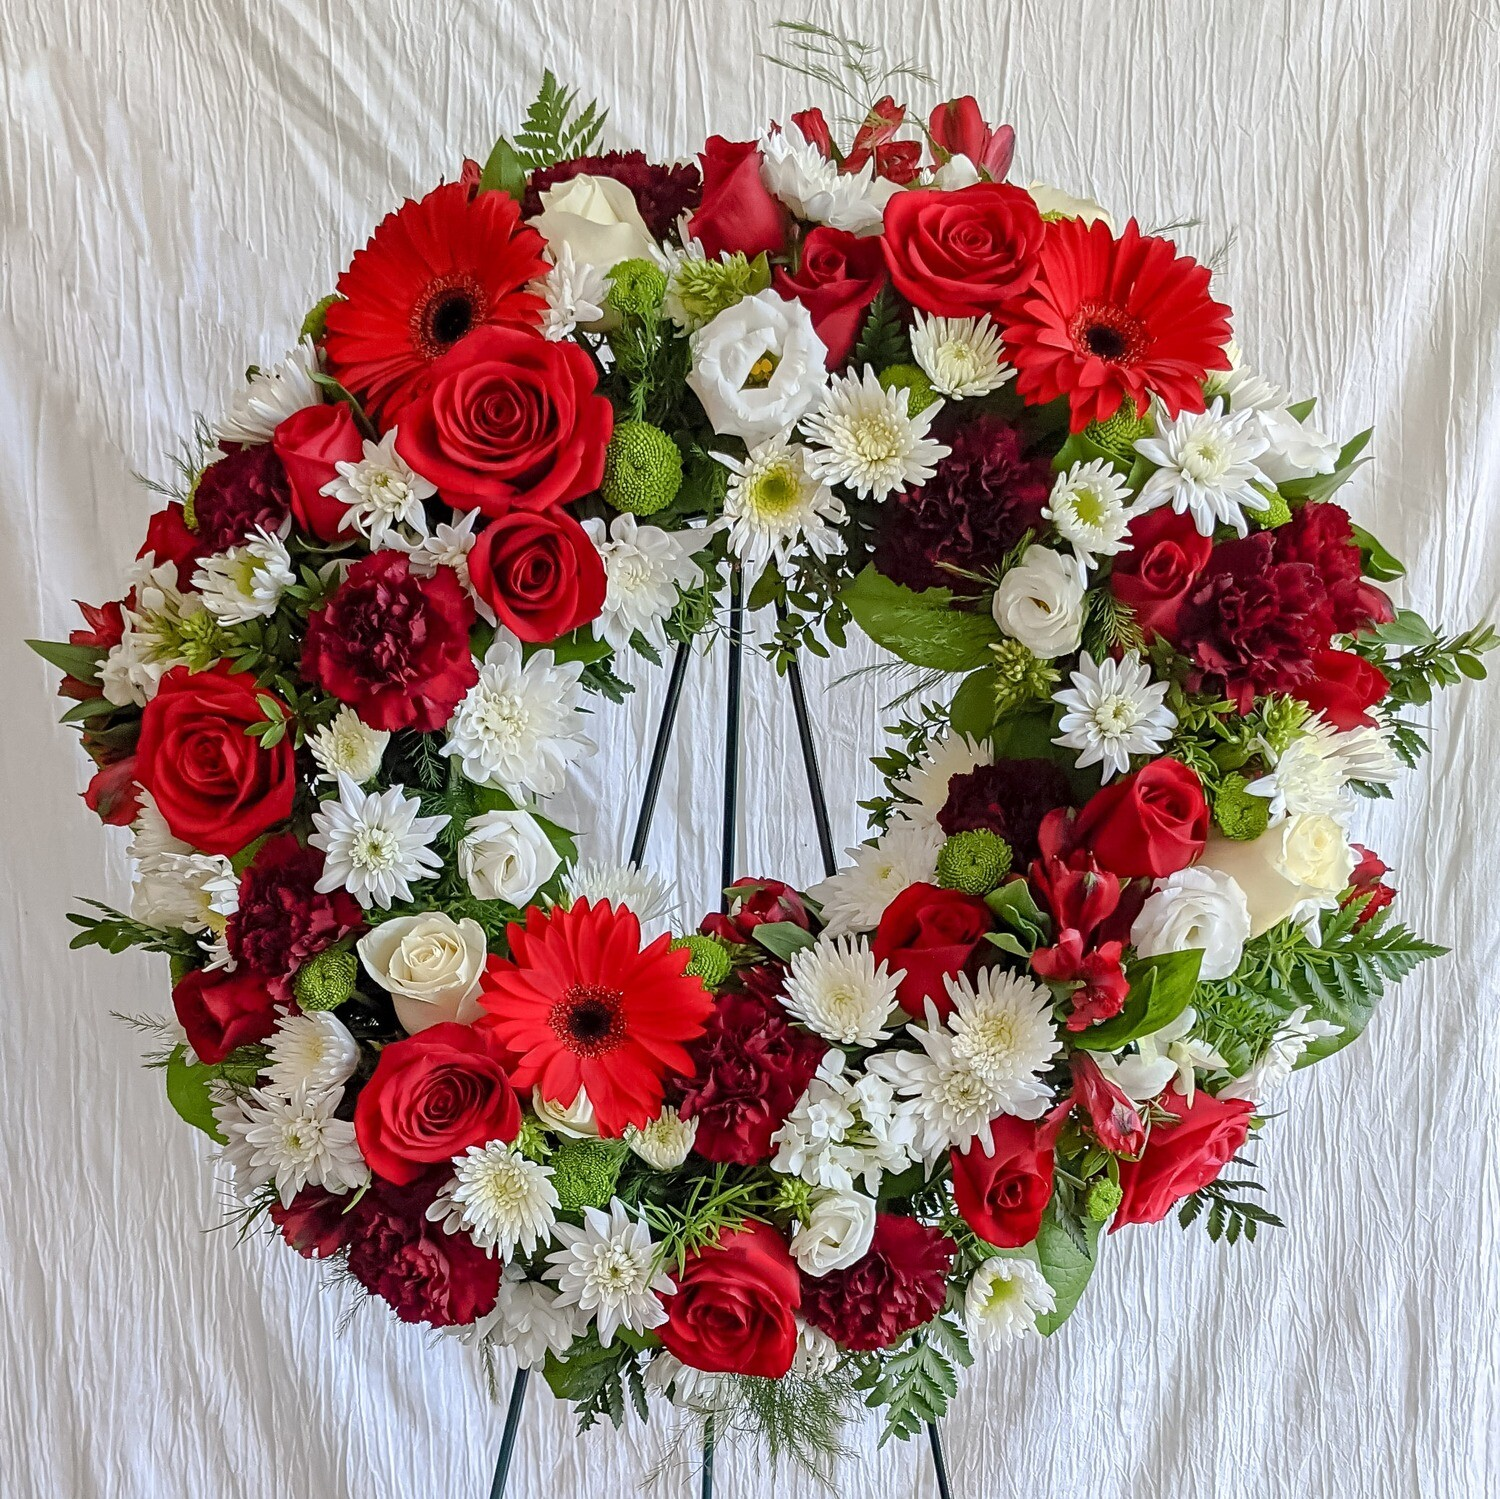 Red + White Funeral Wreath